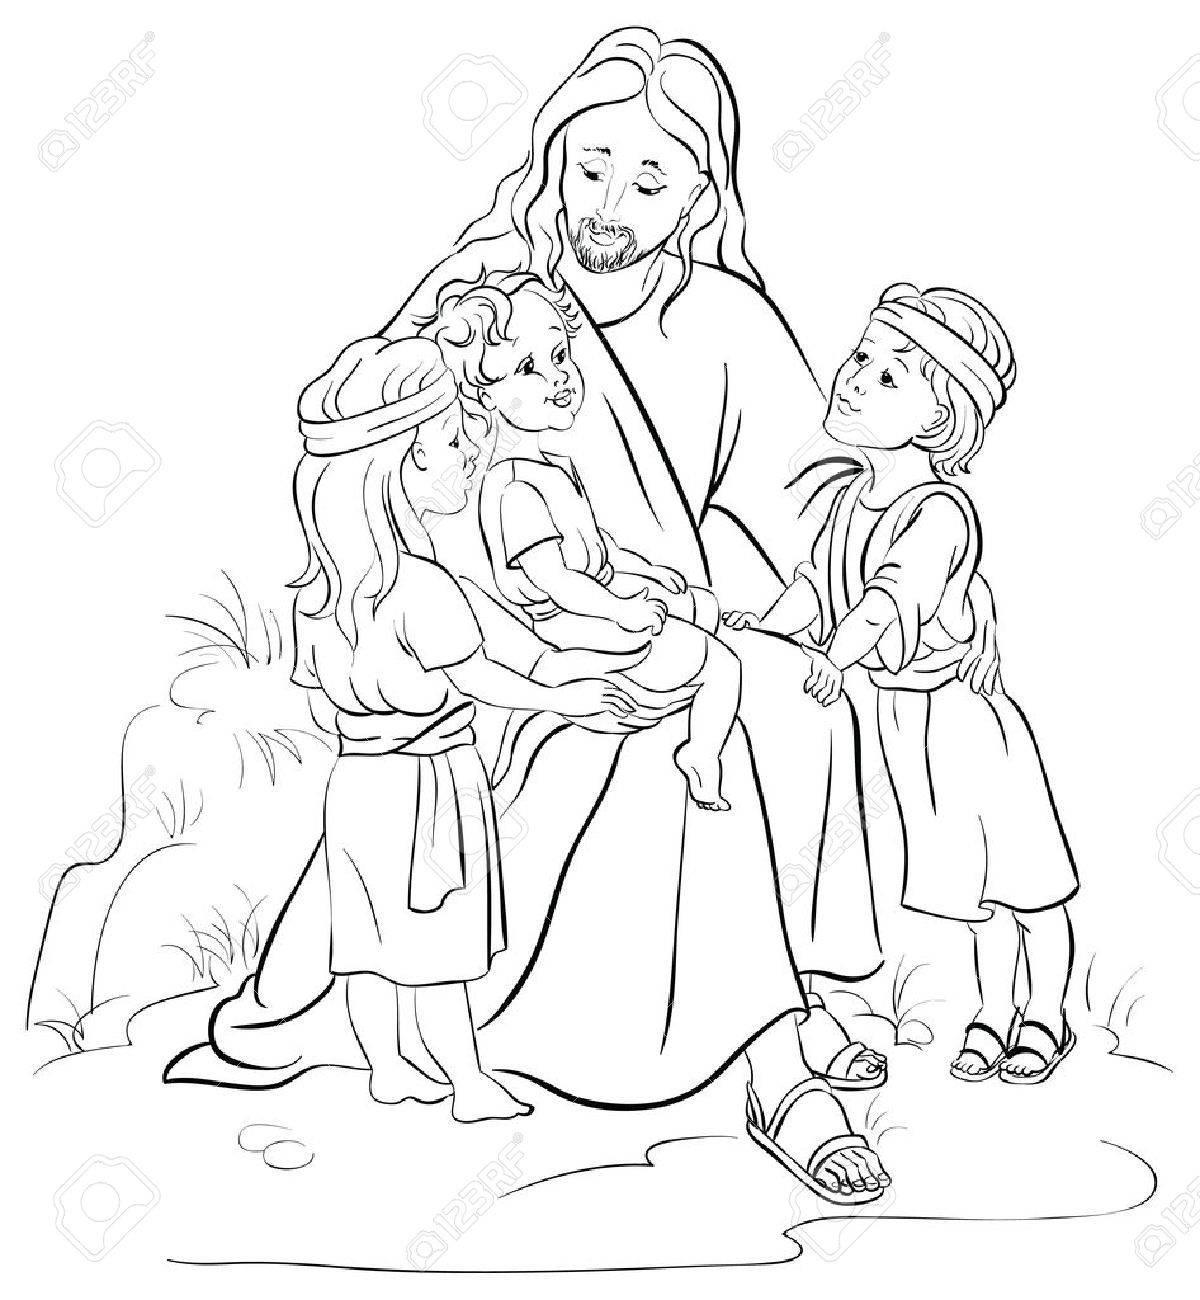 jesus and children royalty free cliparts vectors and stock